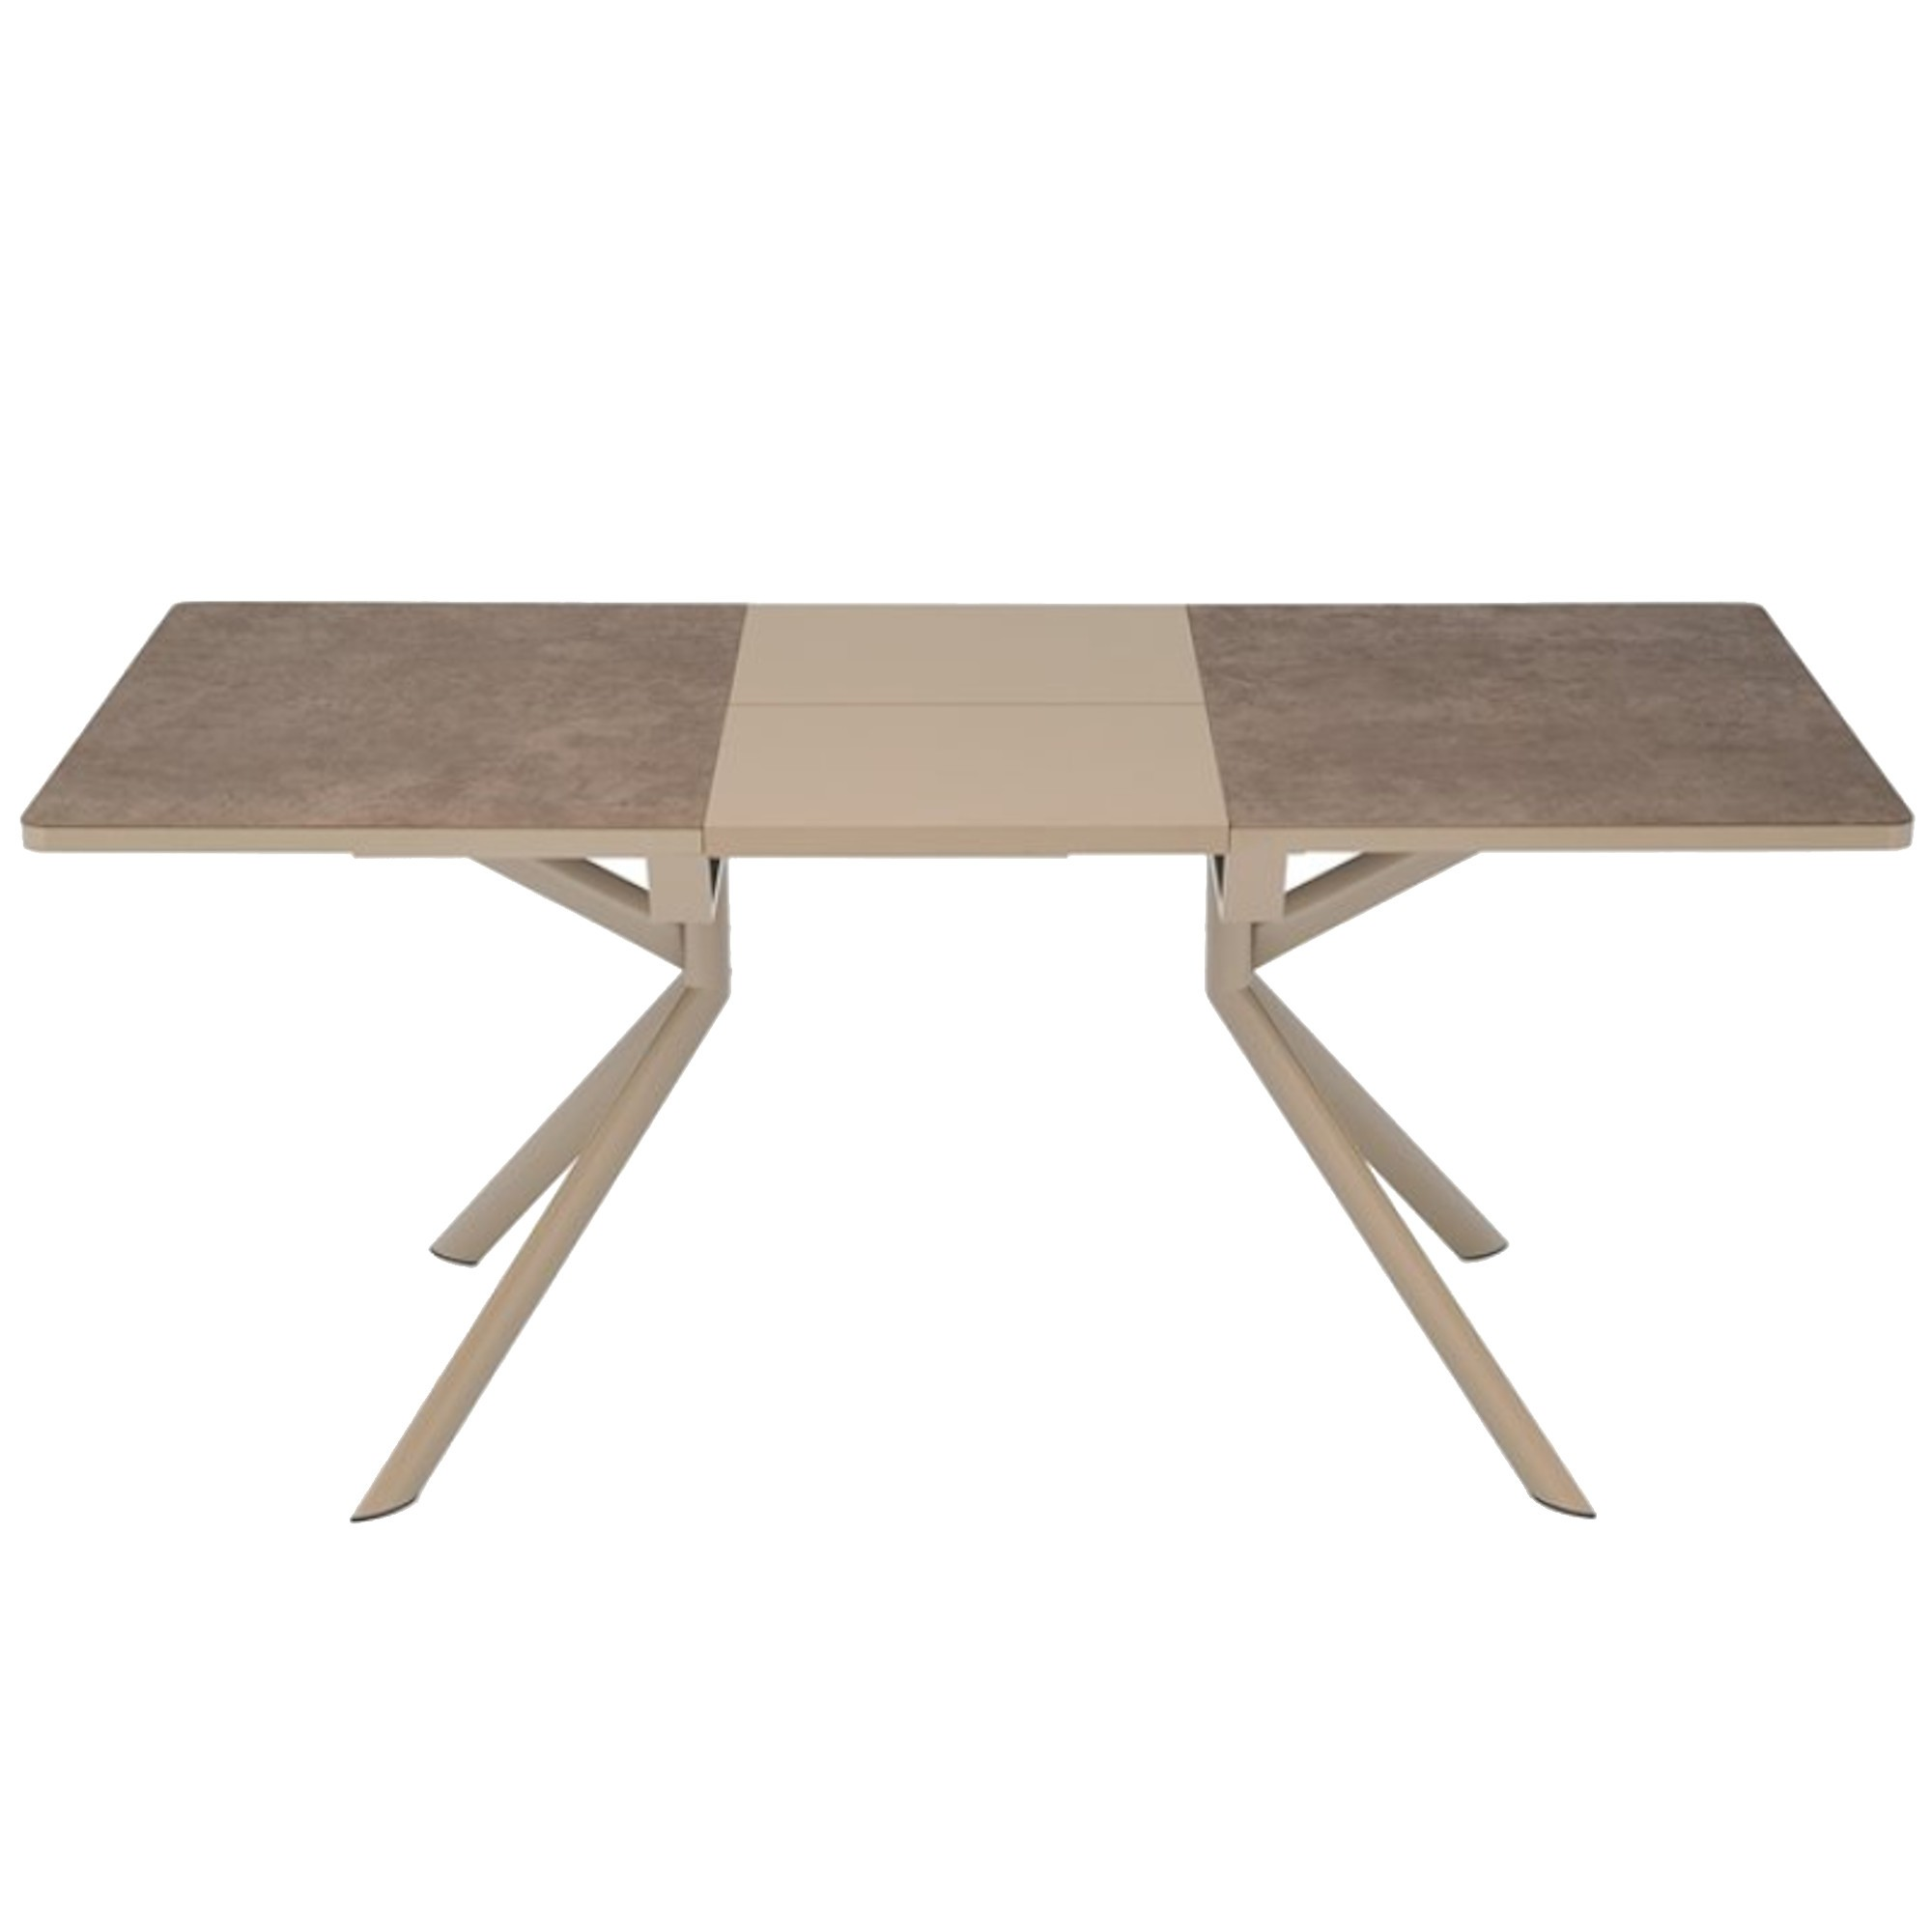 GIOVE RETTANGOLARE, by CONNUBIA BY CALLIGARIS